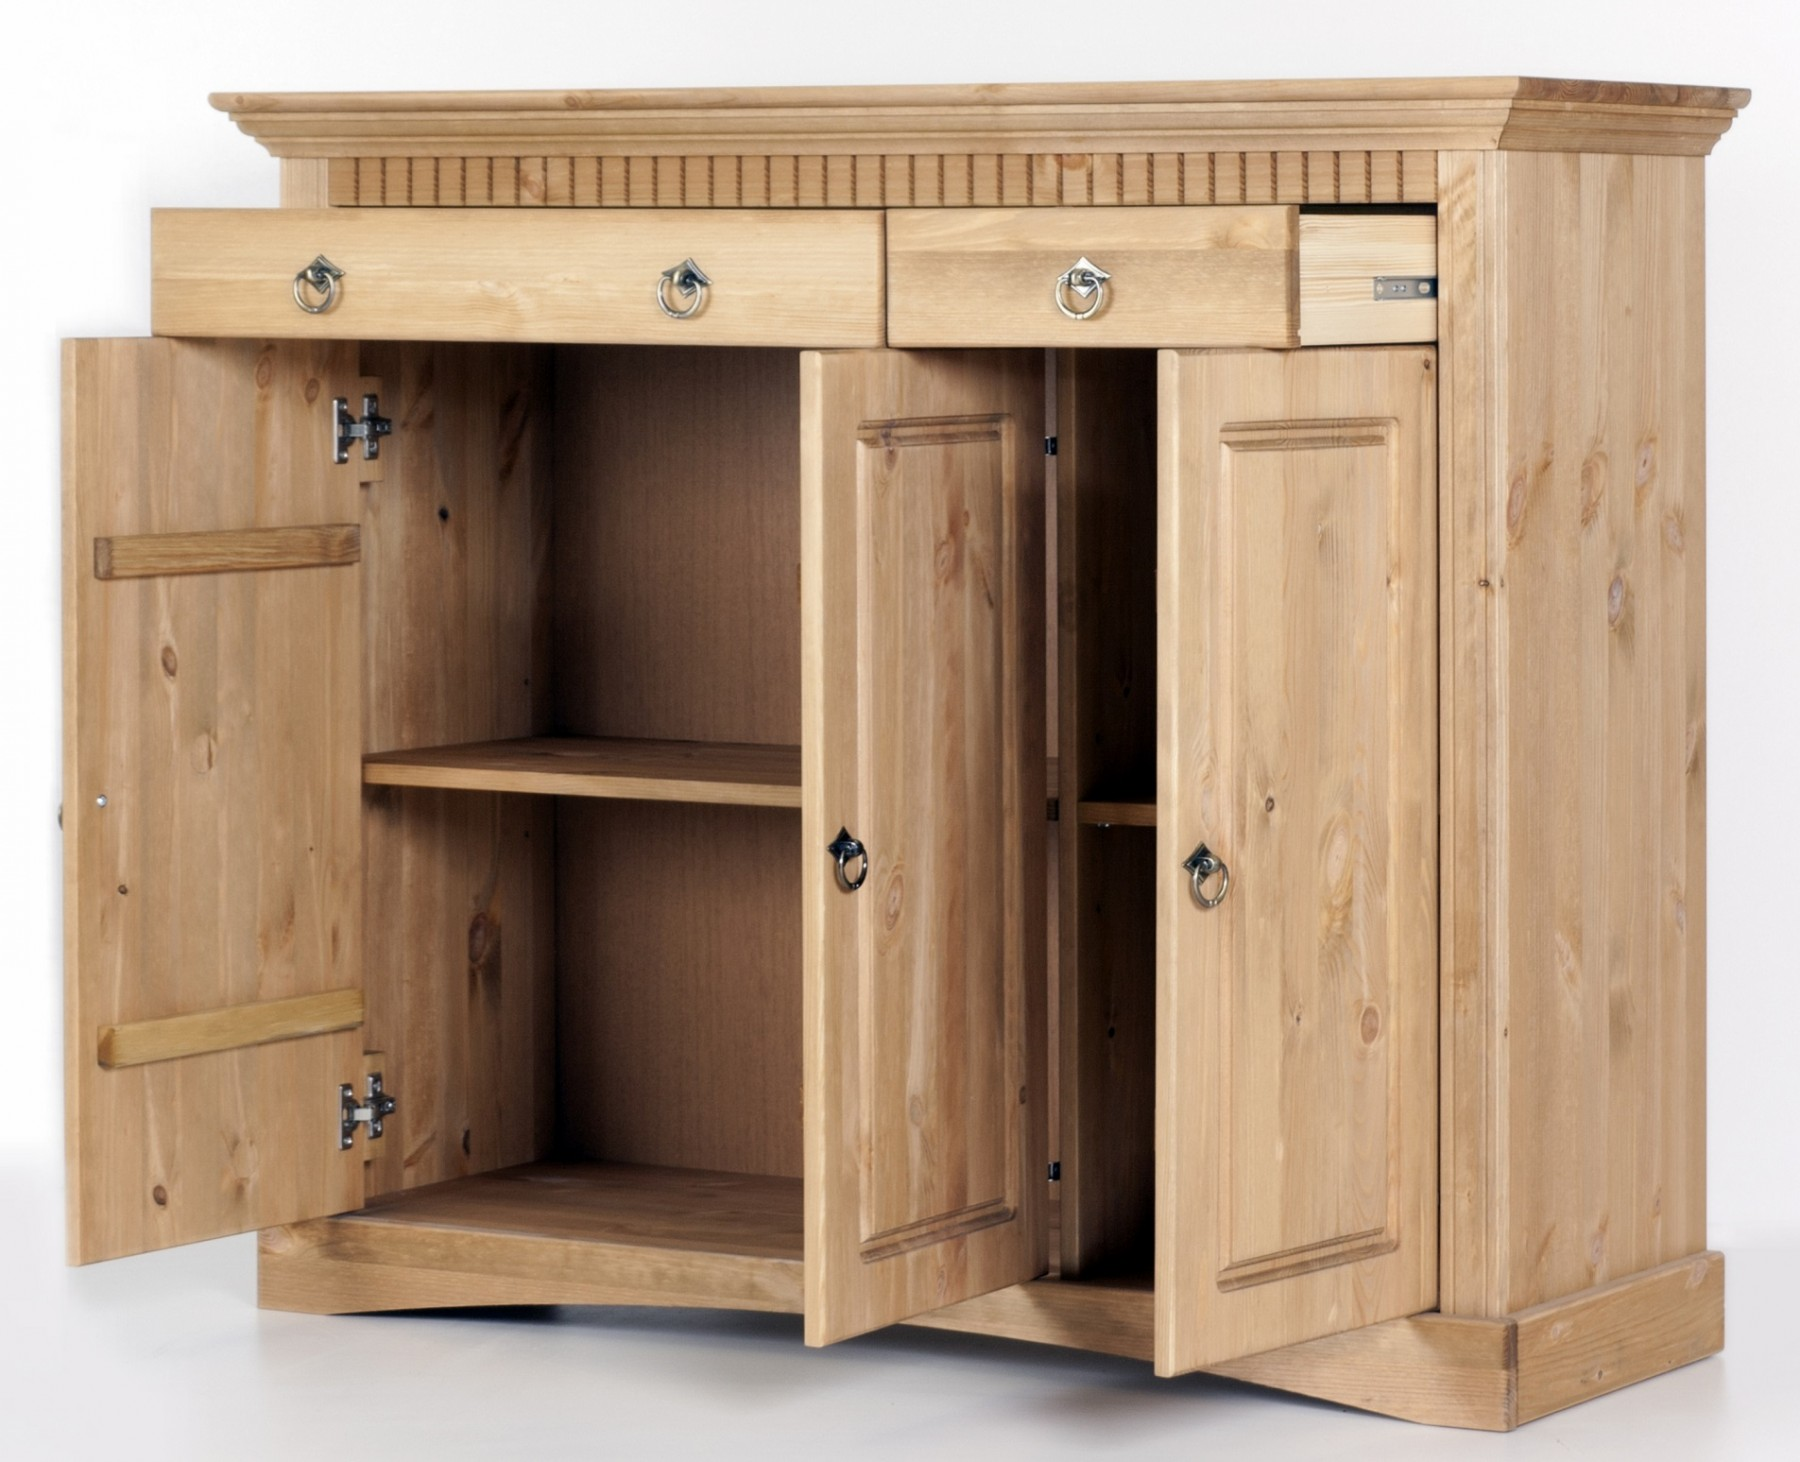 3trg kommode aus kiefernholz gelaugt ge lt schrank sideboard. Black Bedroom Furniture Sets. Home Design Ideas